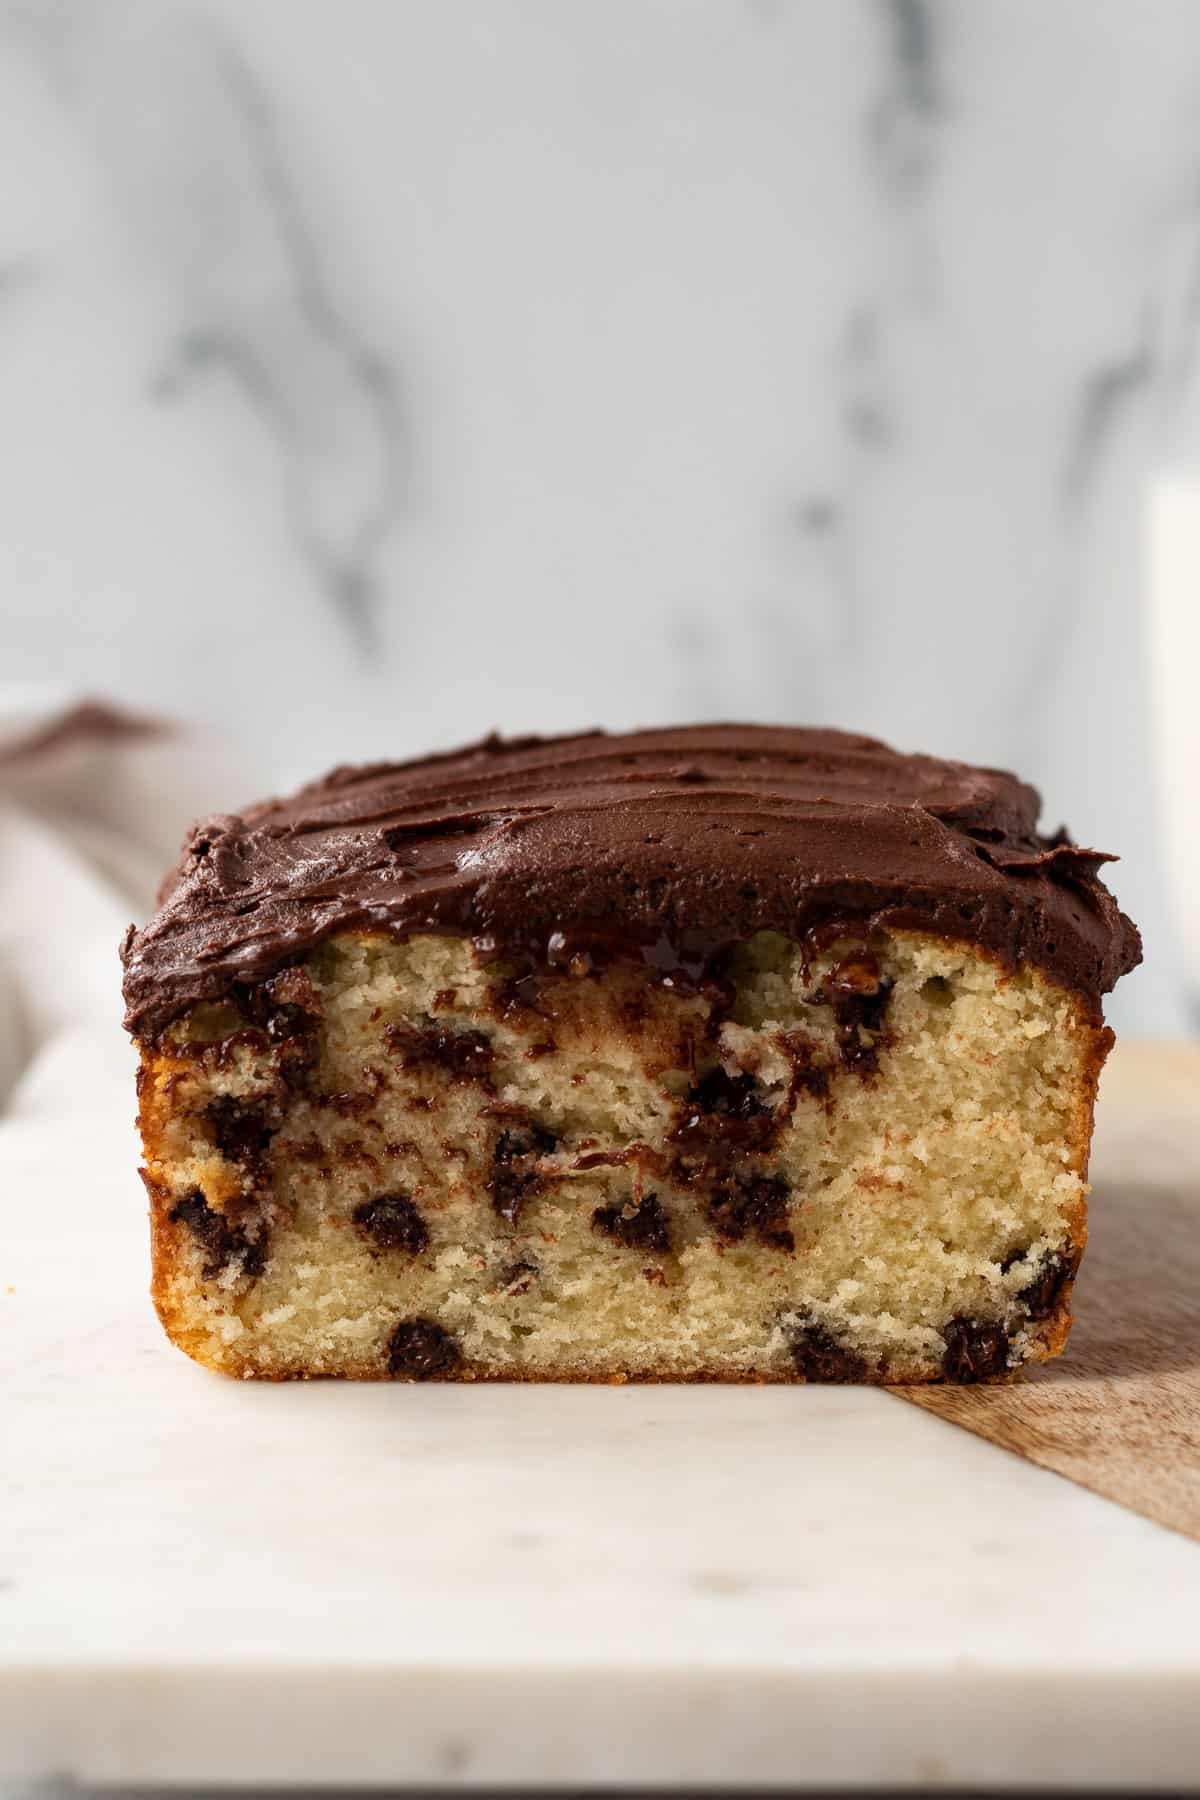 chocolate chip loaf cake frosted with whipped chocolate ganache sitting on a marble slab